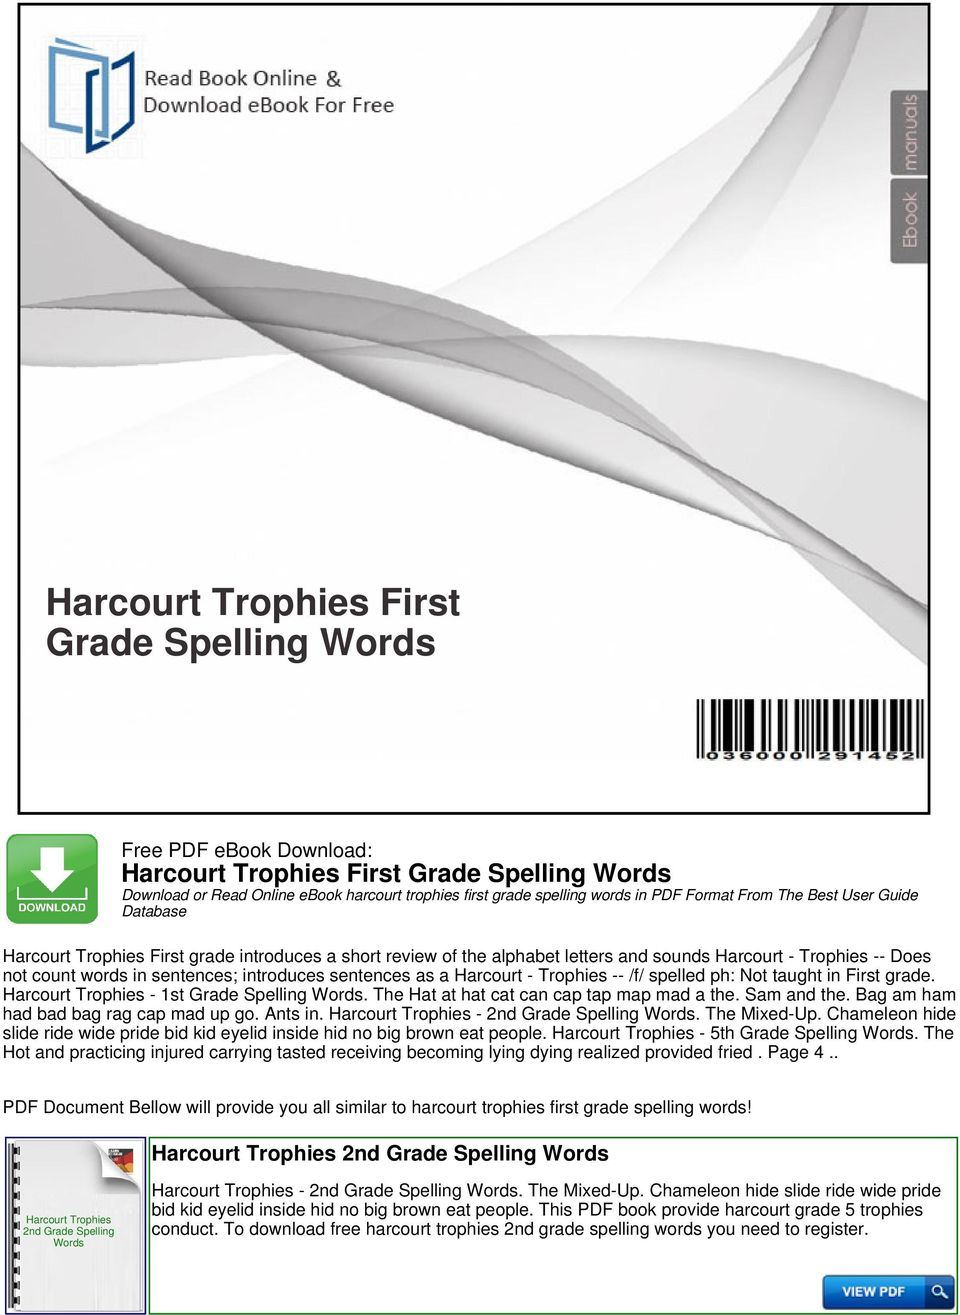 spelled ph: Not taught in First grade. - 1st Grade Spelling Words. The